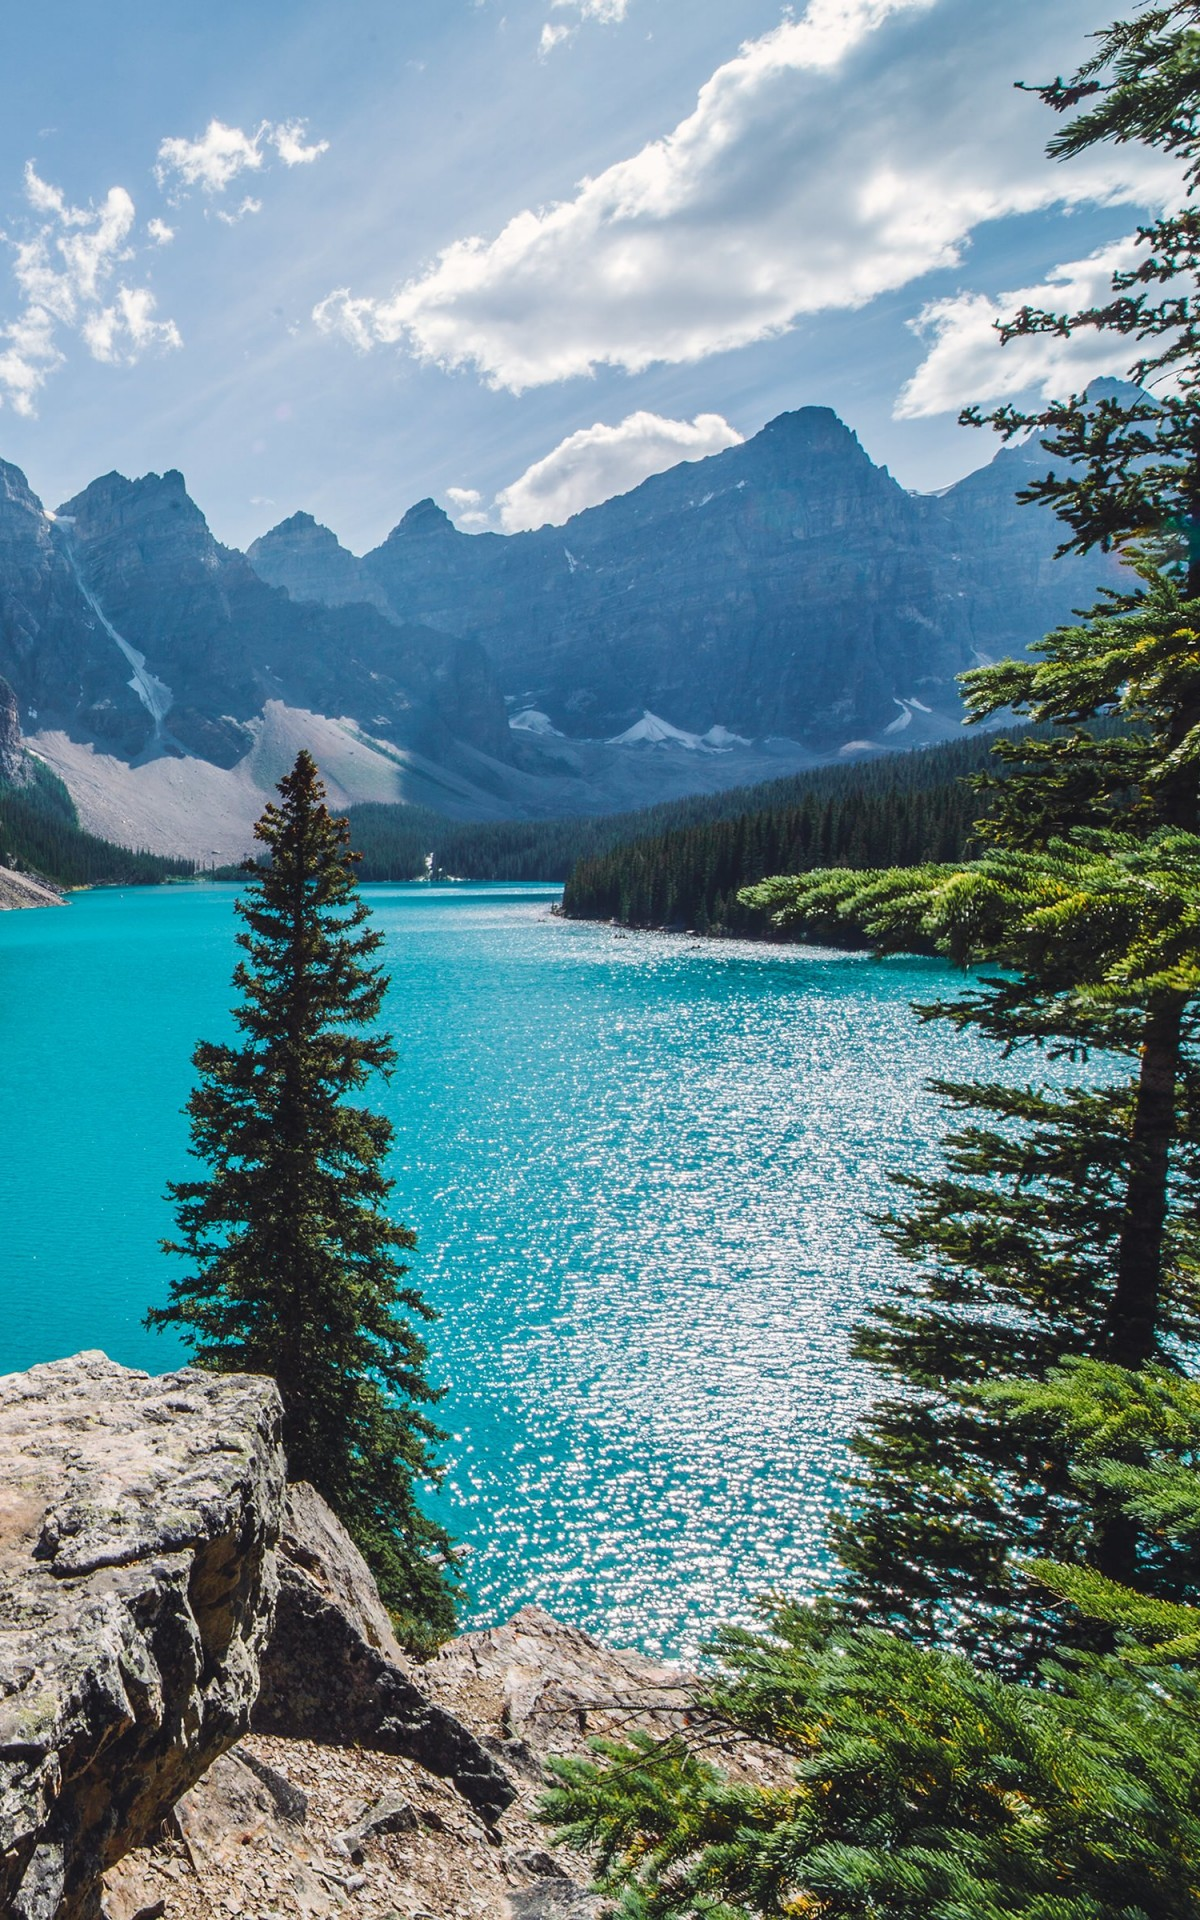 Sunny day over Moraine Lake Wallpaper for Amazon Kindle Fire HDX